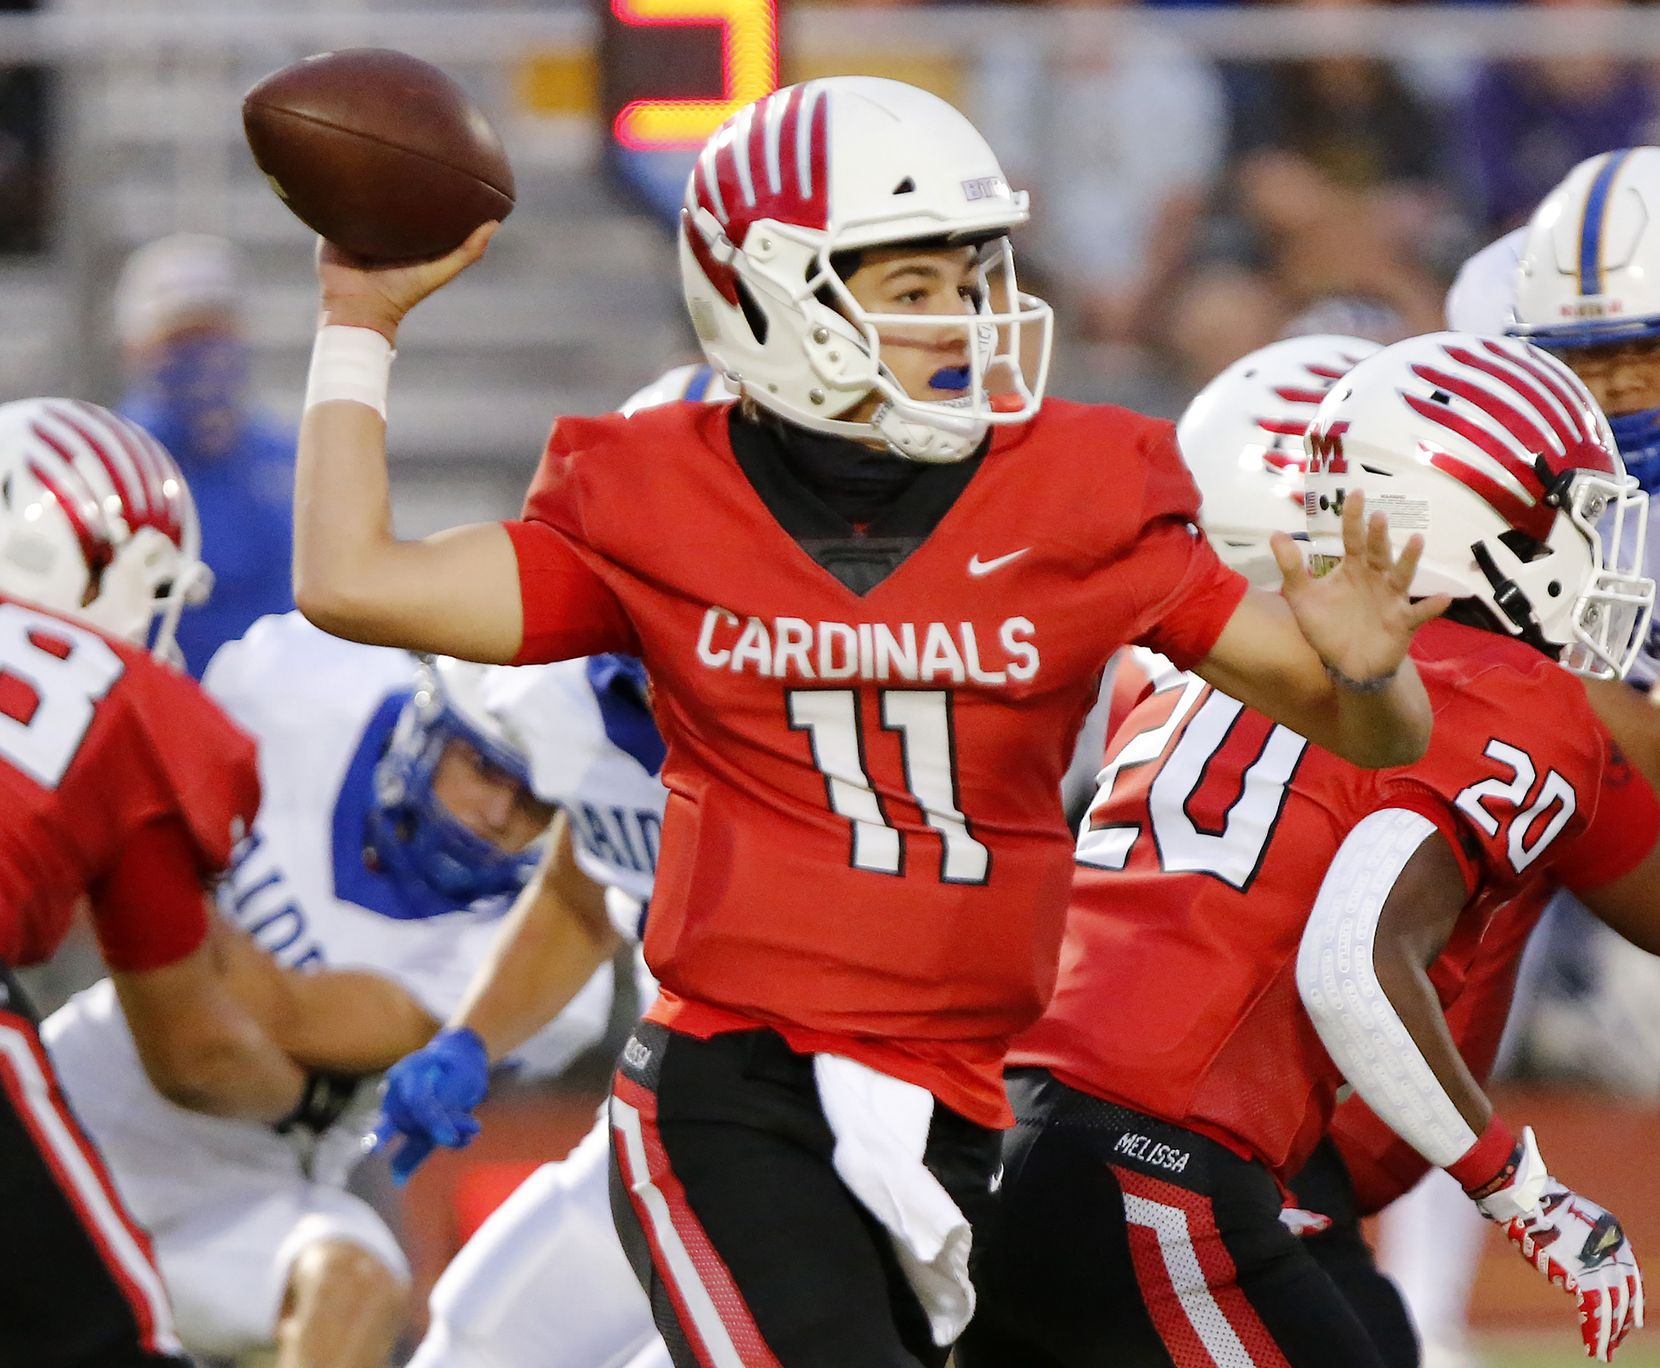 Melissa High School quarterback Sam Fennegan (11) throws a pass during the first half as Melissa High School hosted Sunnyvale High School at Melissa I.S.D. Stadium on Friday night, September 4, 2020.  (Stewart F. House/Special Contributor)